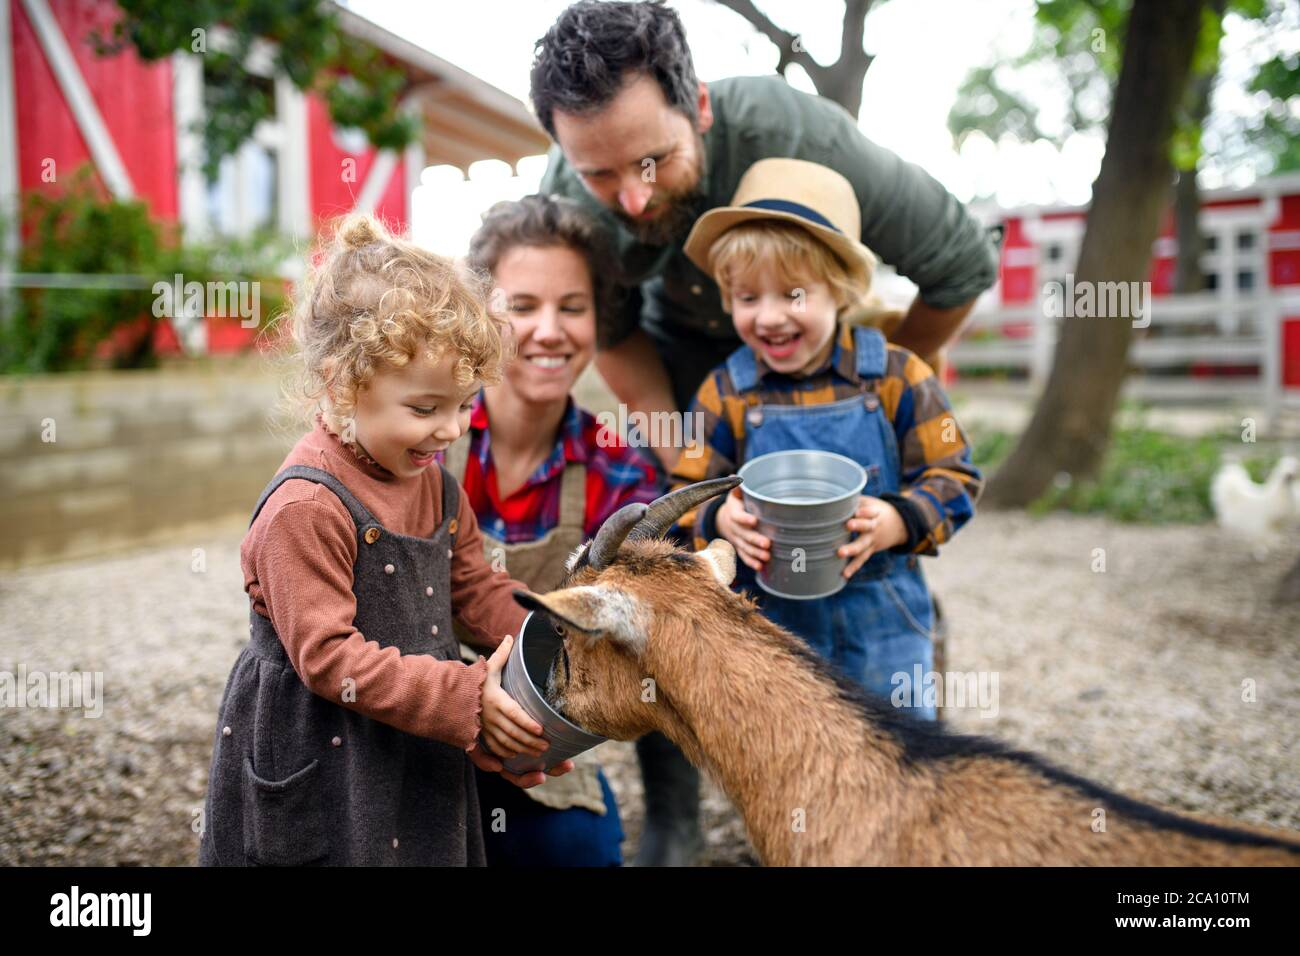 Portrait of family with small children standing on farm, giving water to goat. Stock Photo